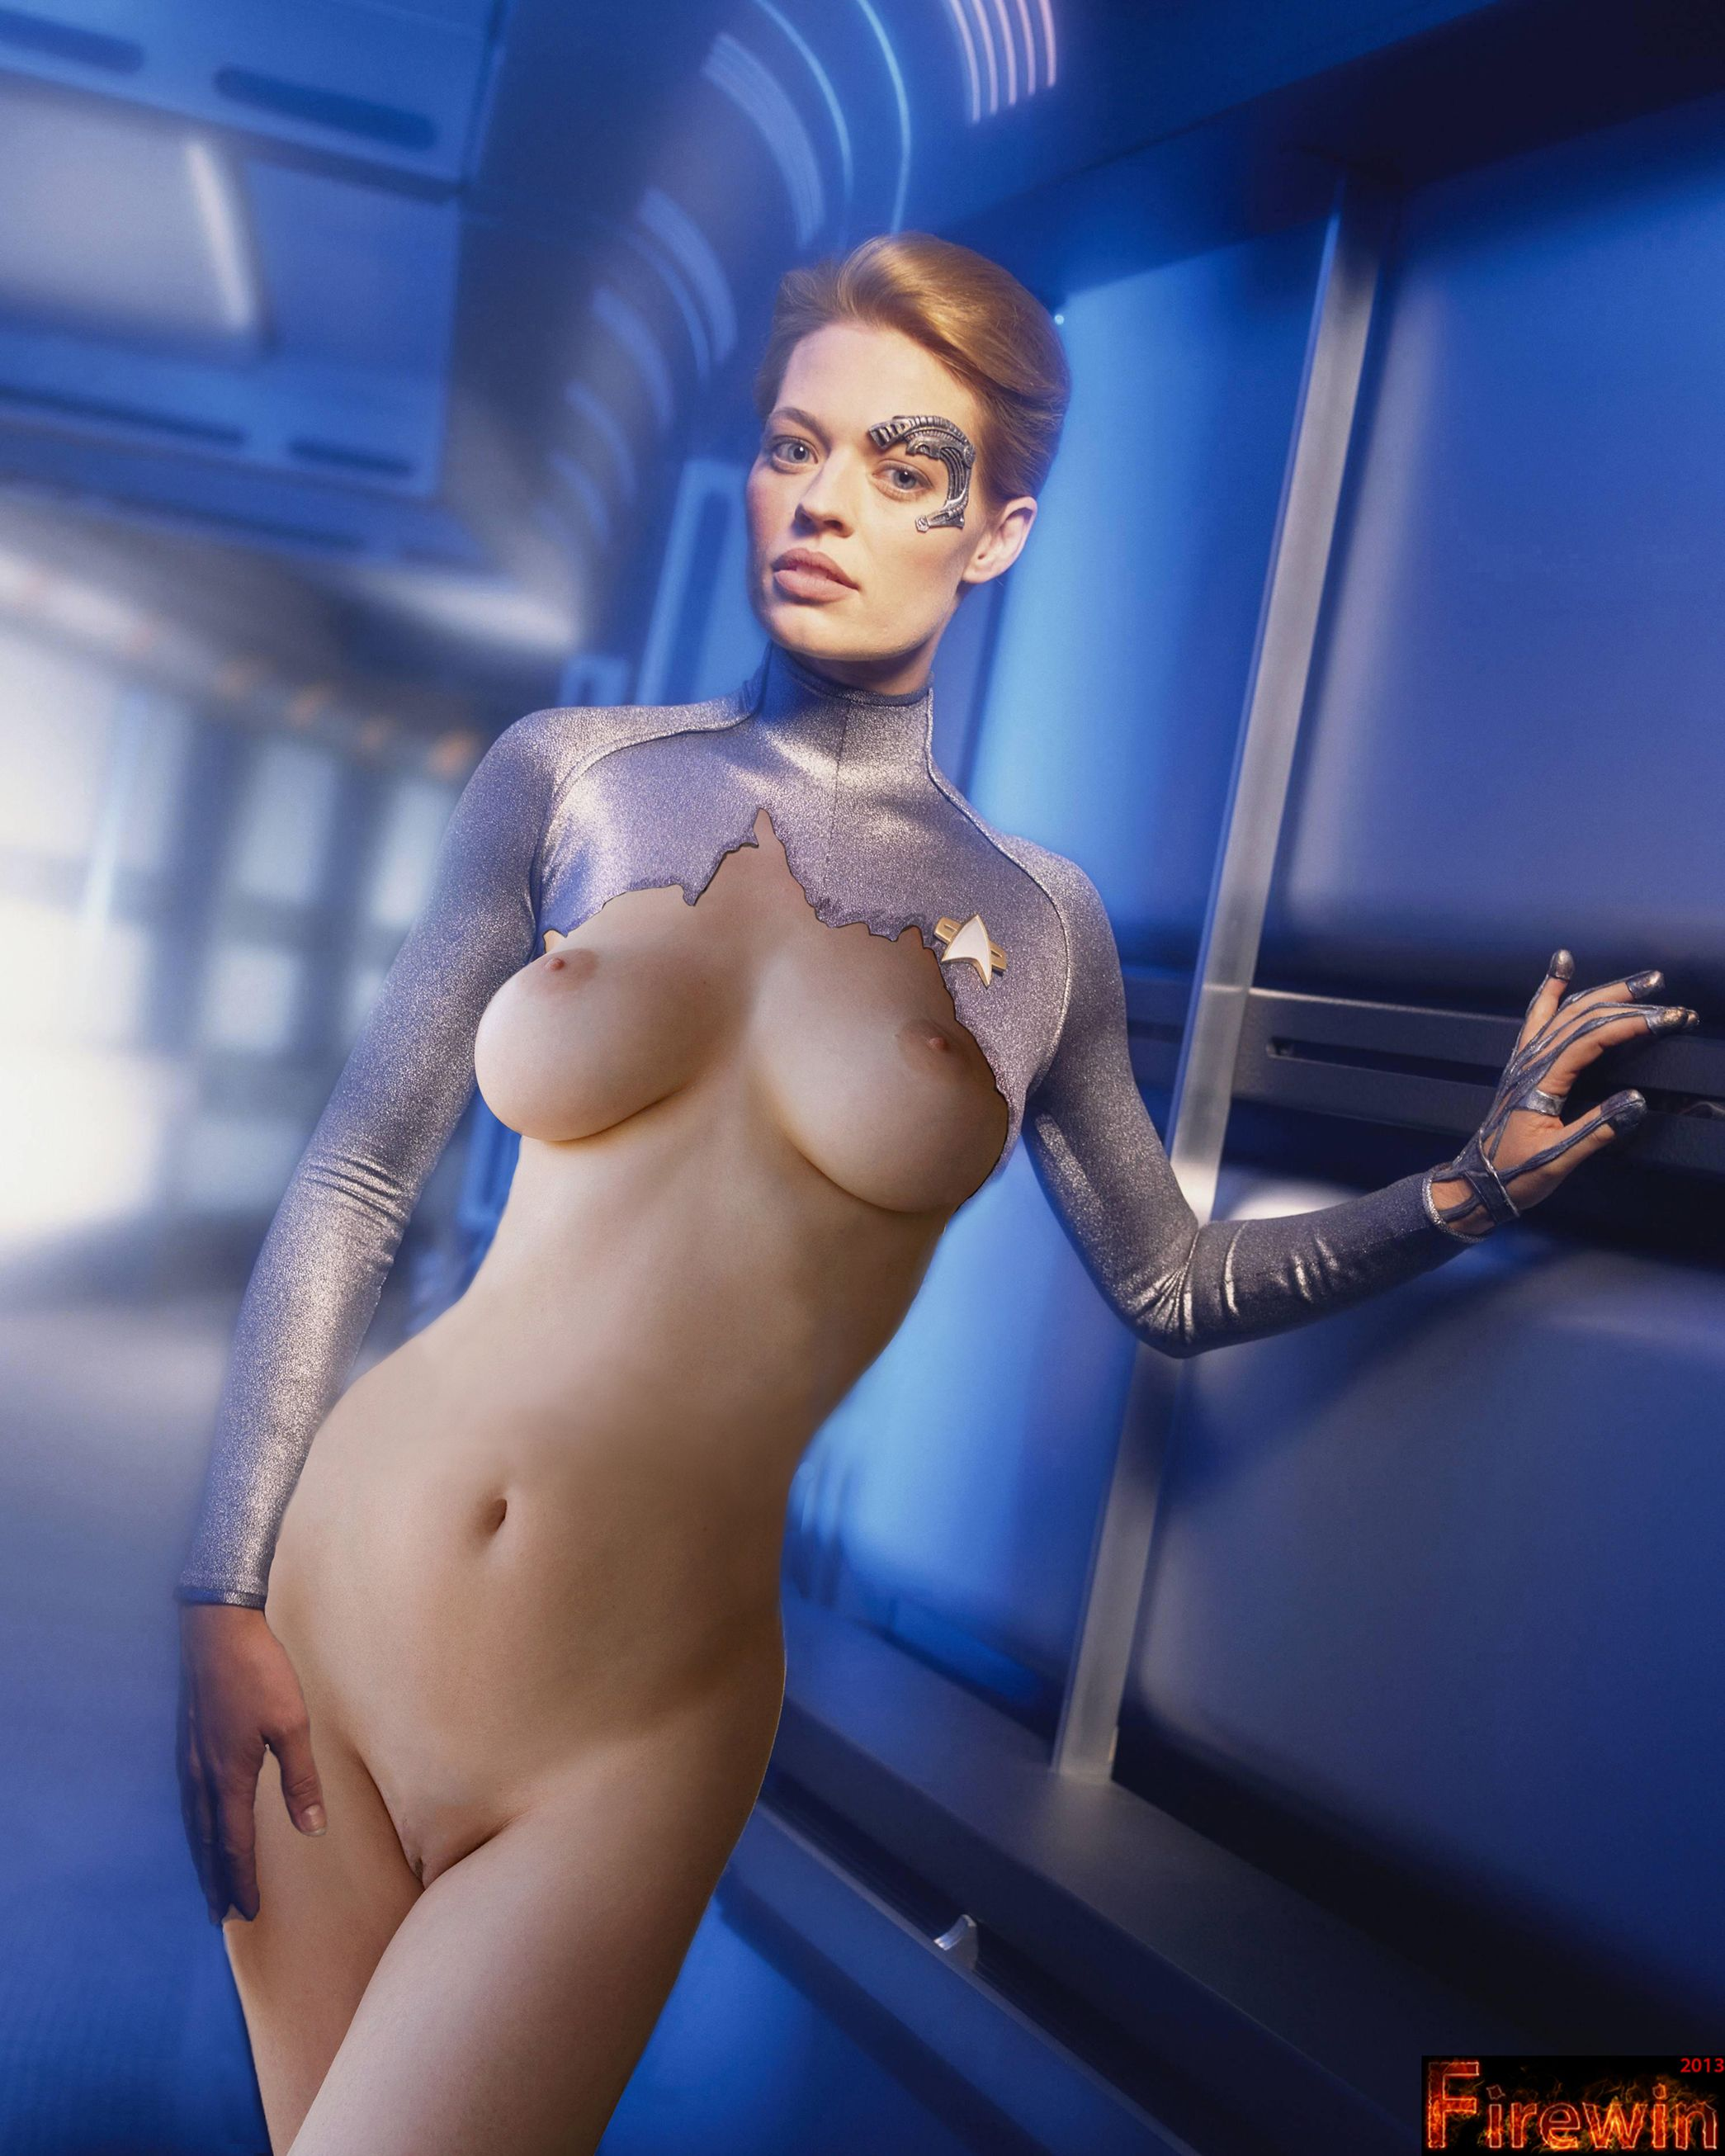 Amusing Star trek seven of nine porno that interfere